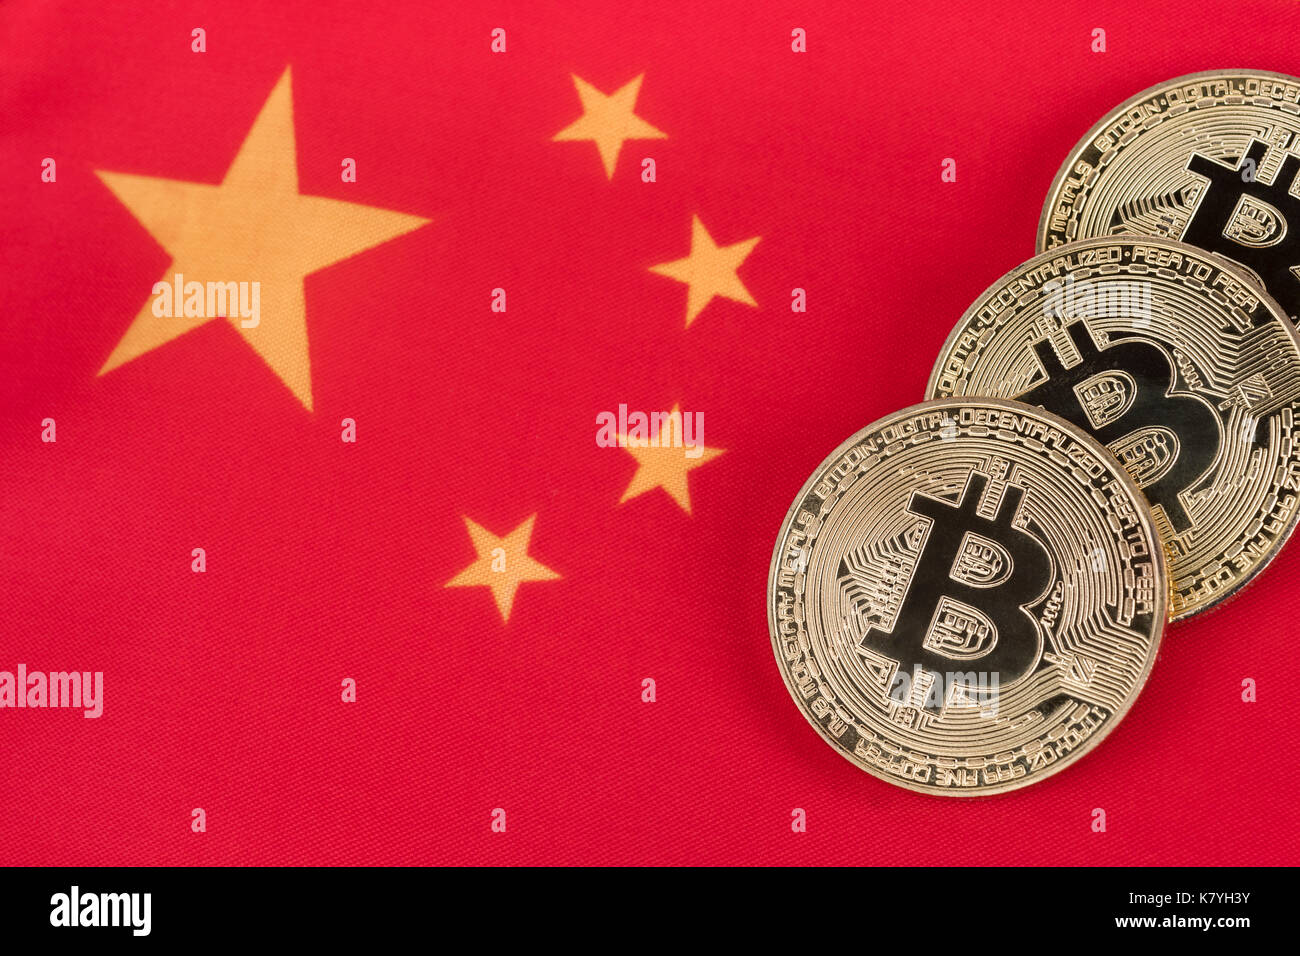 Chinese flag with BitCoin - after Chinese government expressed possiblity of banning or regulation BitCoin. China Blockchain conference concept. - Stock Image